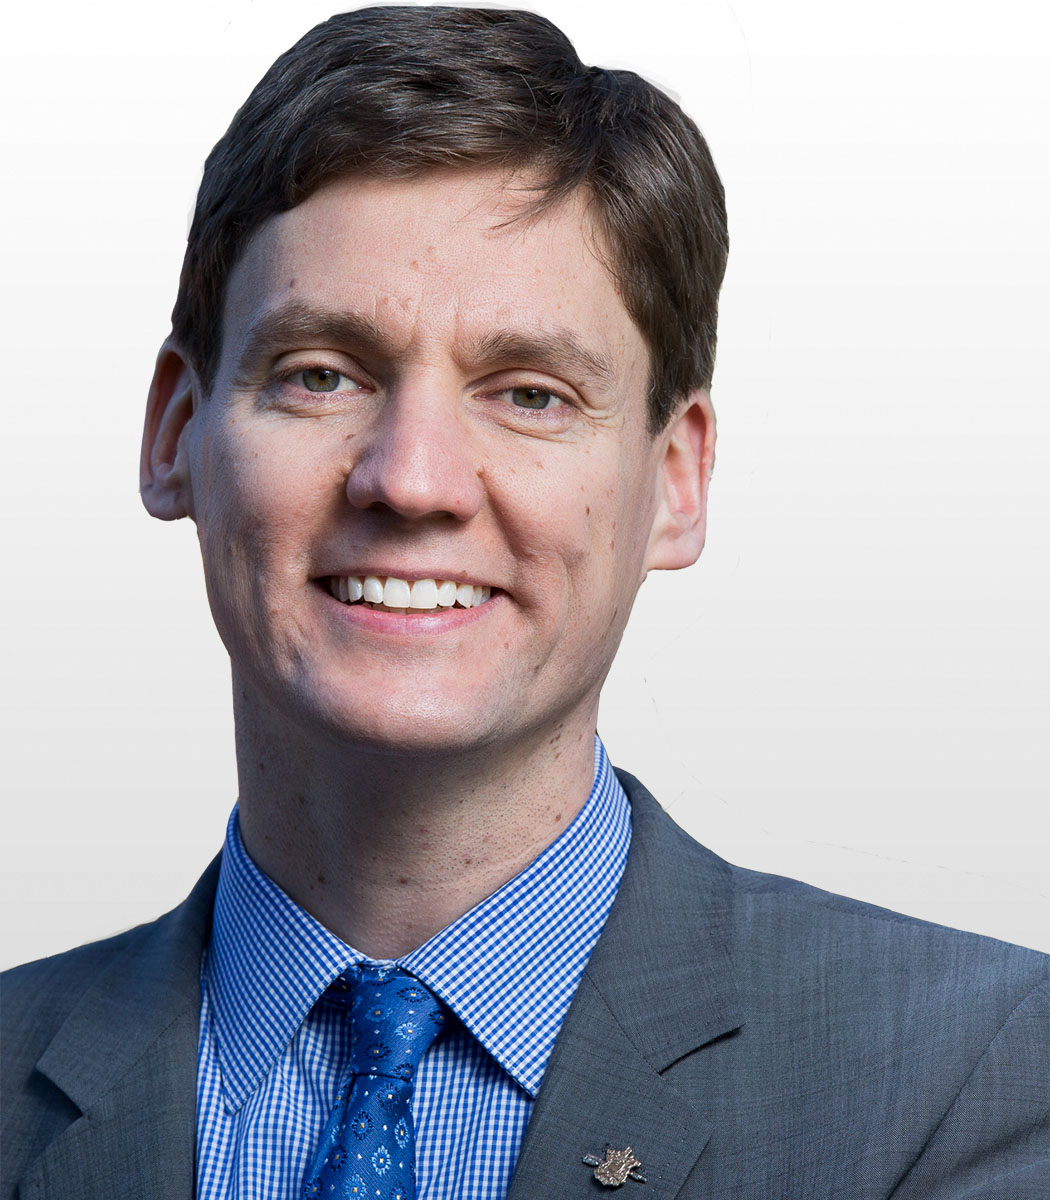 attorney general honourable david eby. Resume Example. Resume CV Cover Letter